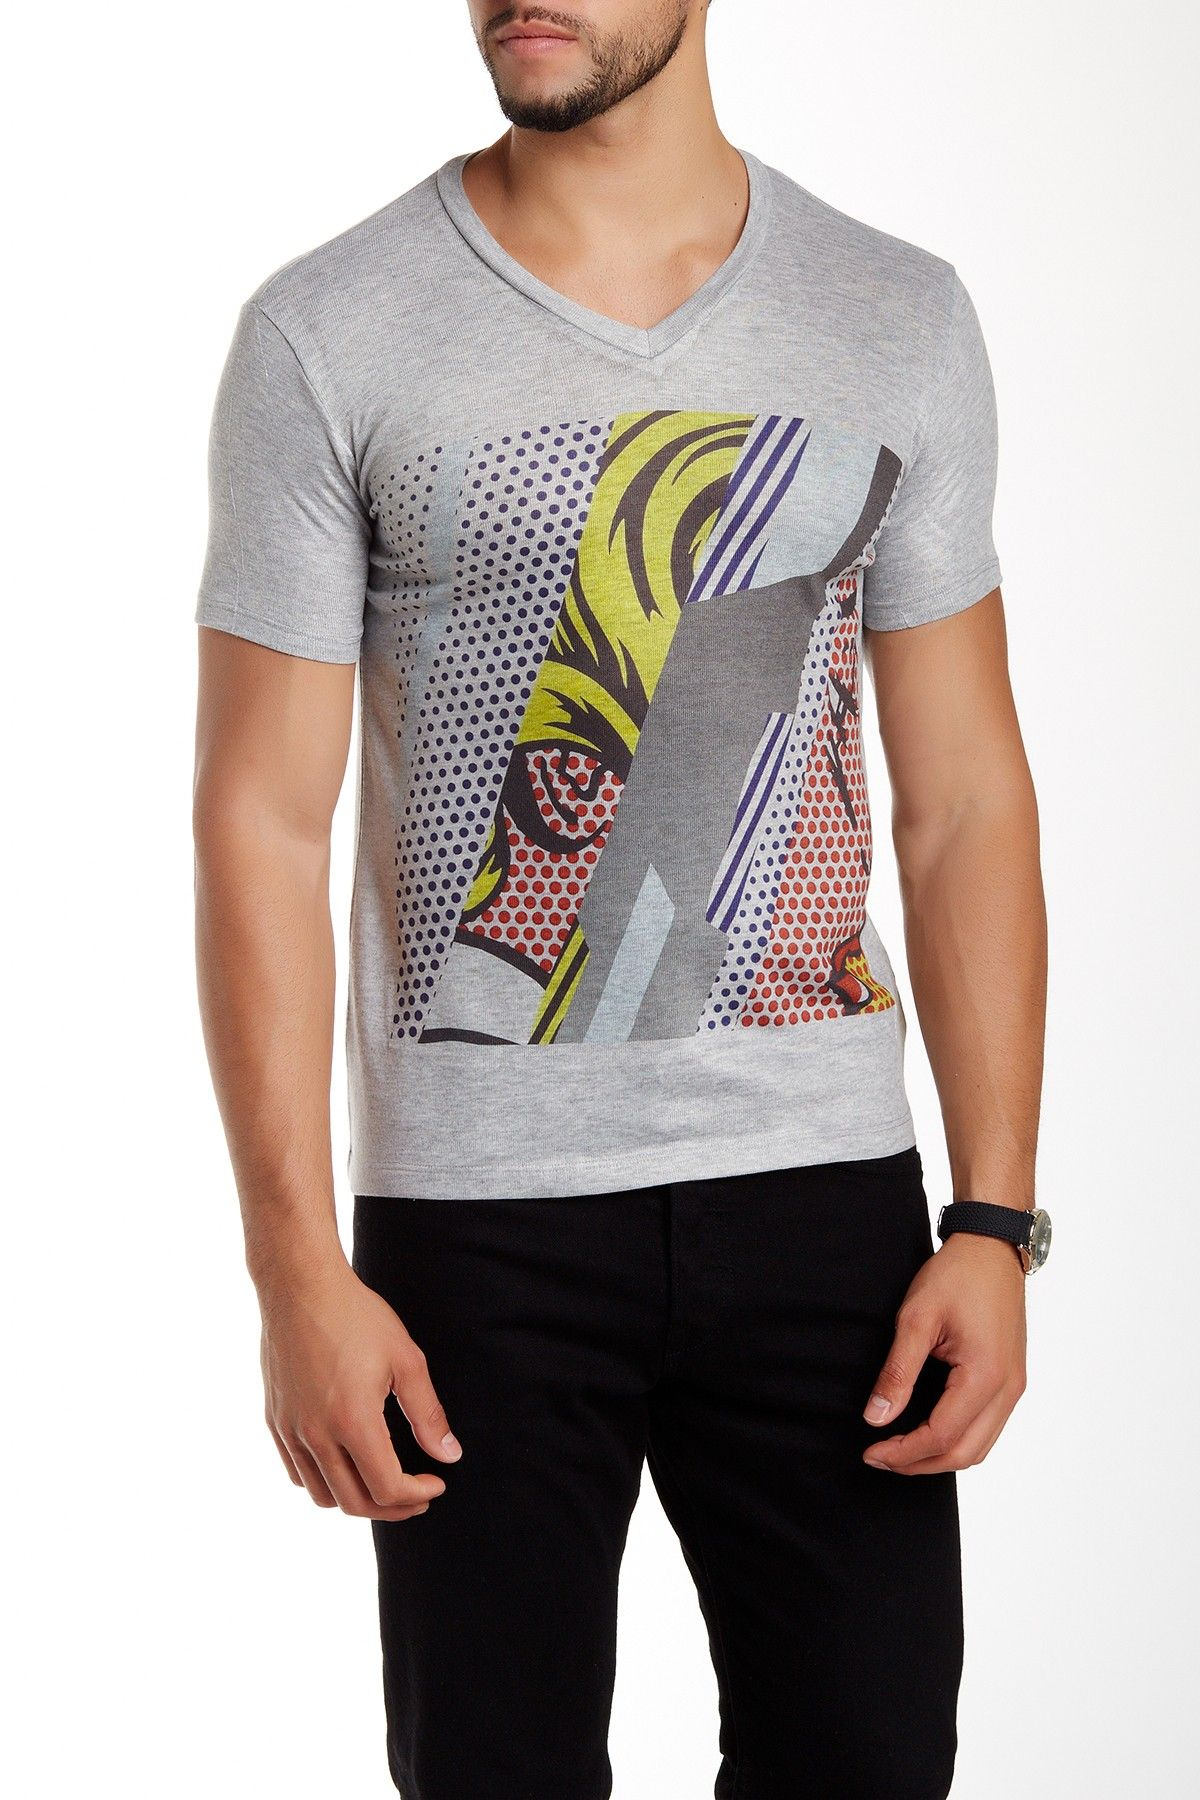 dfe2a78f962d Contemporary Art Tee by Go Couture on @HauteLook Up to 75% Off ...